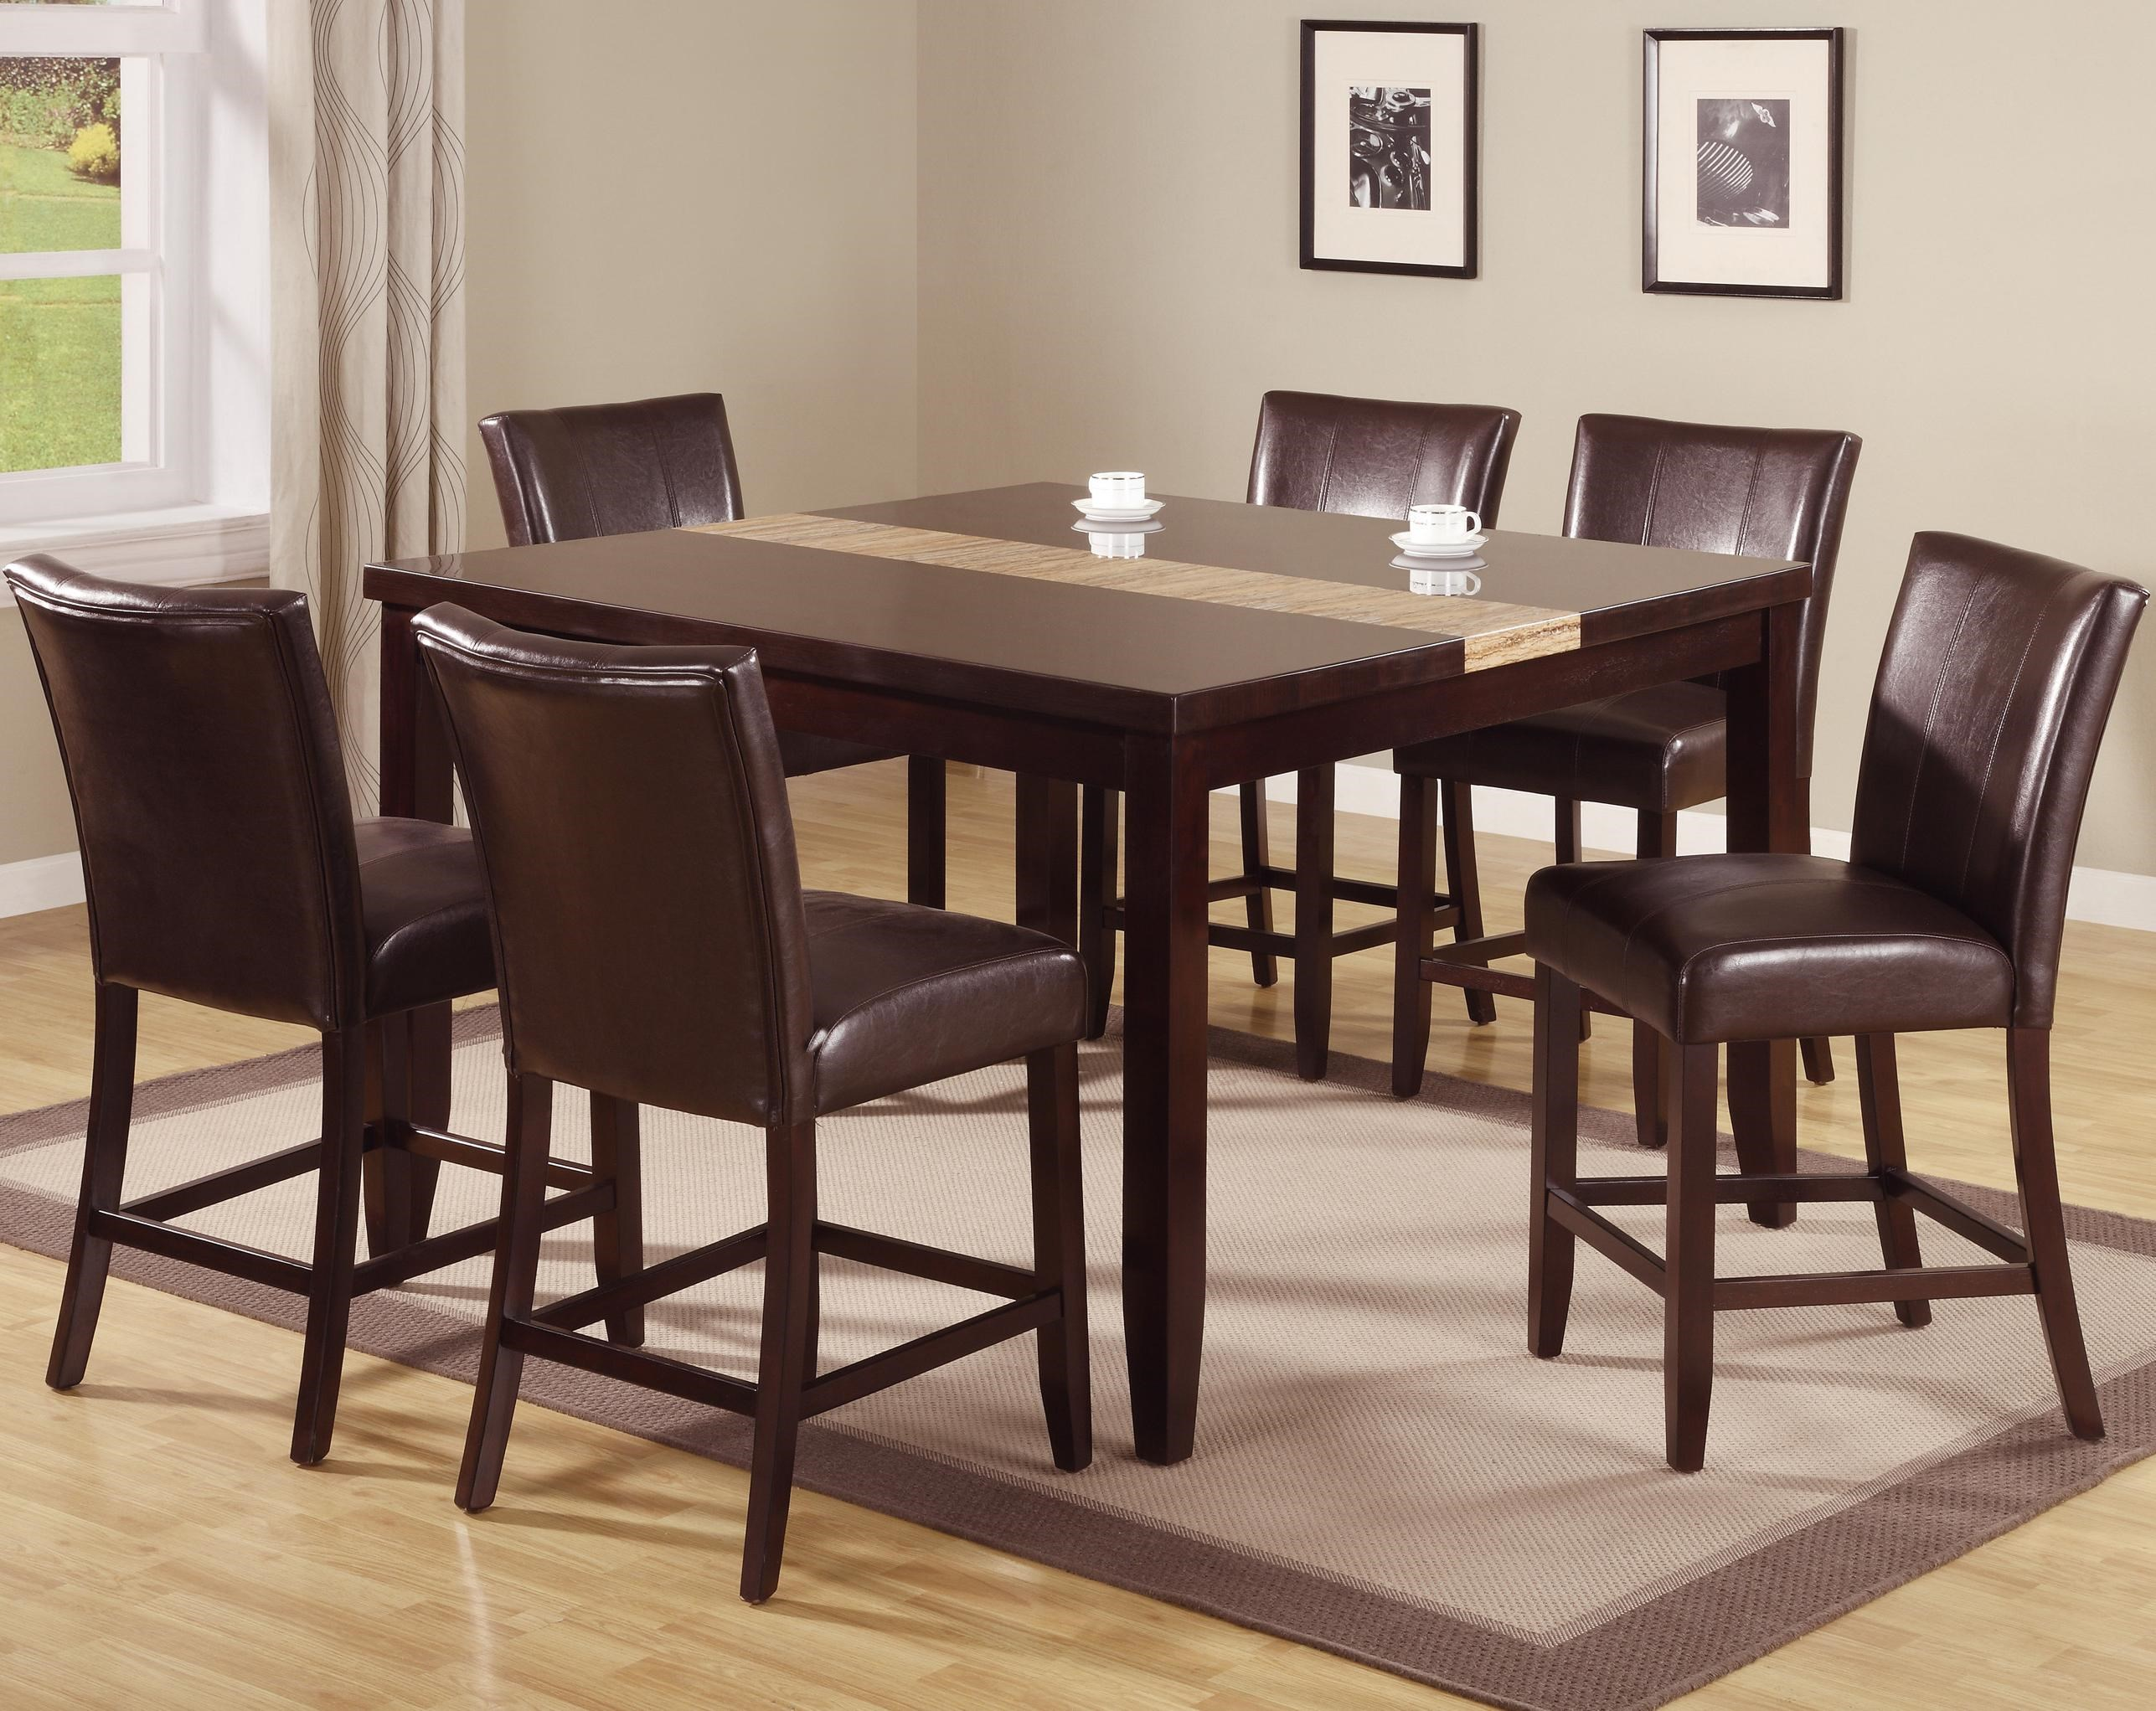 Awesome Crown Mark Madrid U0026 Ferrara 7 Piece Pub Table Set With Upholstered Counter  Chairs